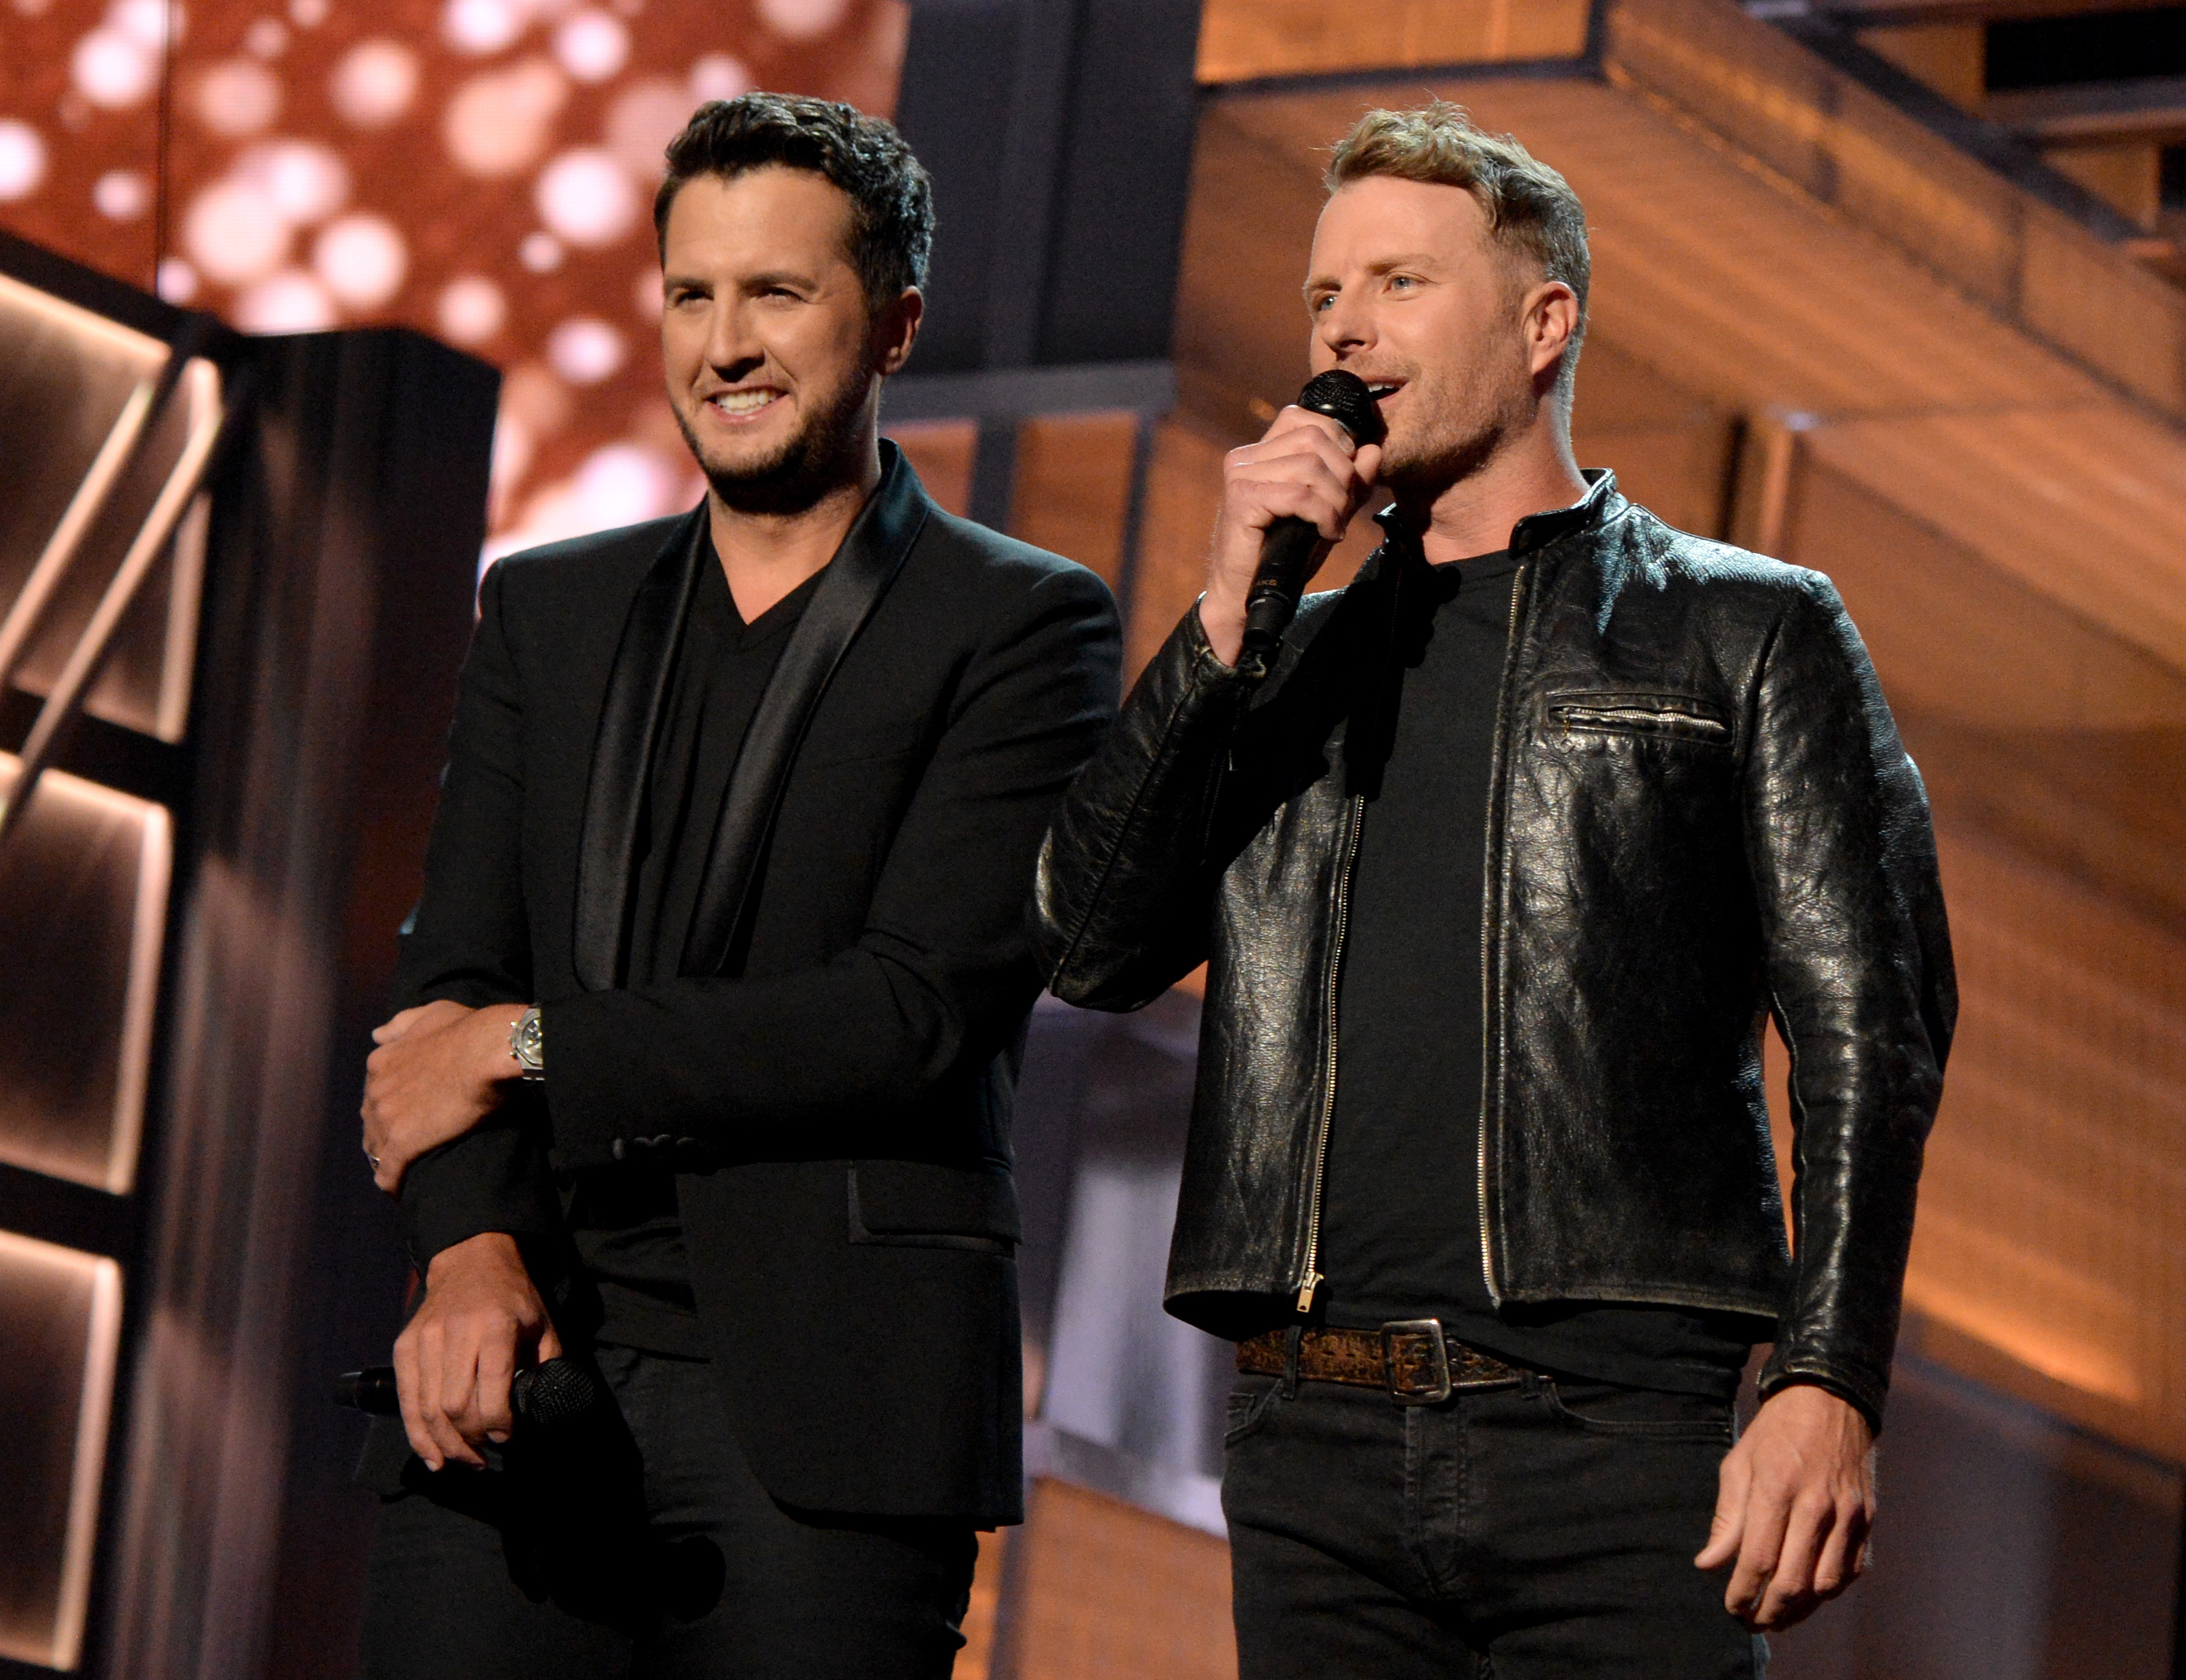 Luke Bryan and Dierks Bentley just saluted the late Merle